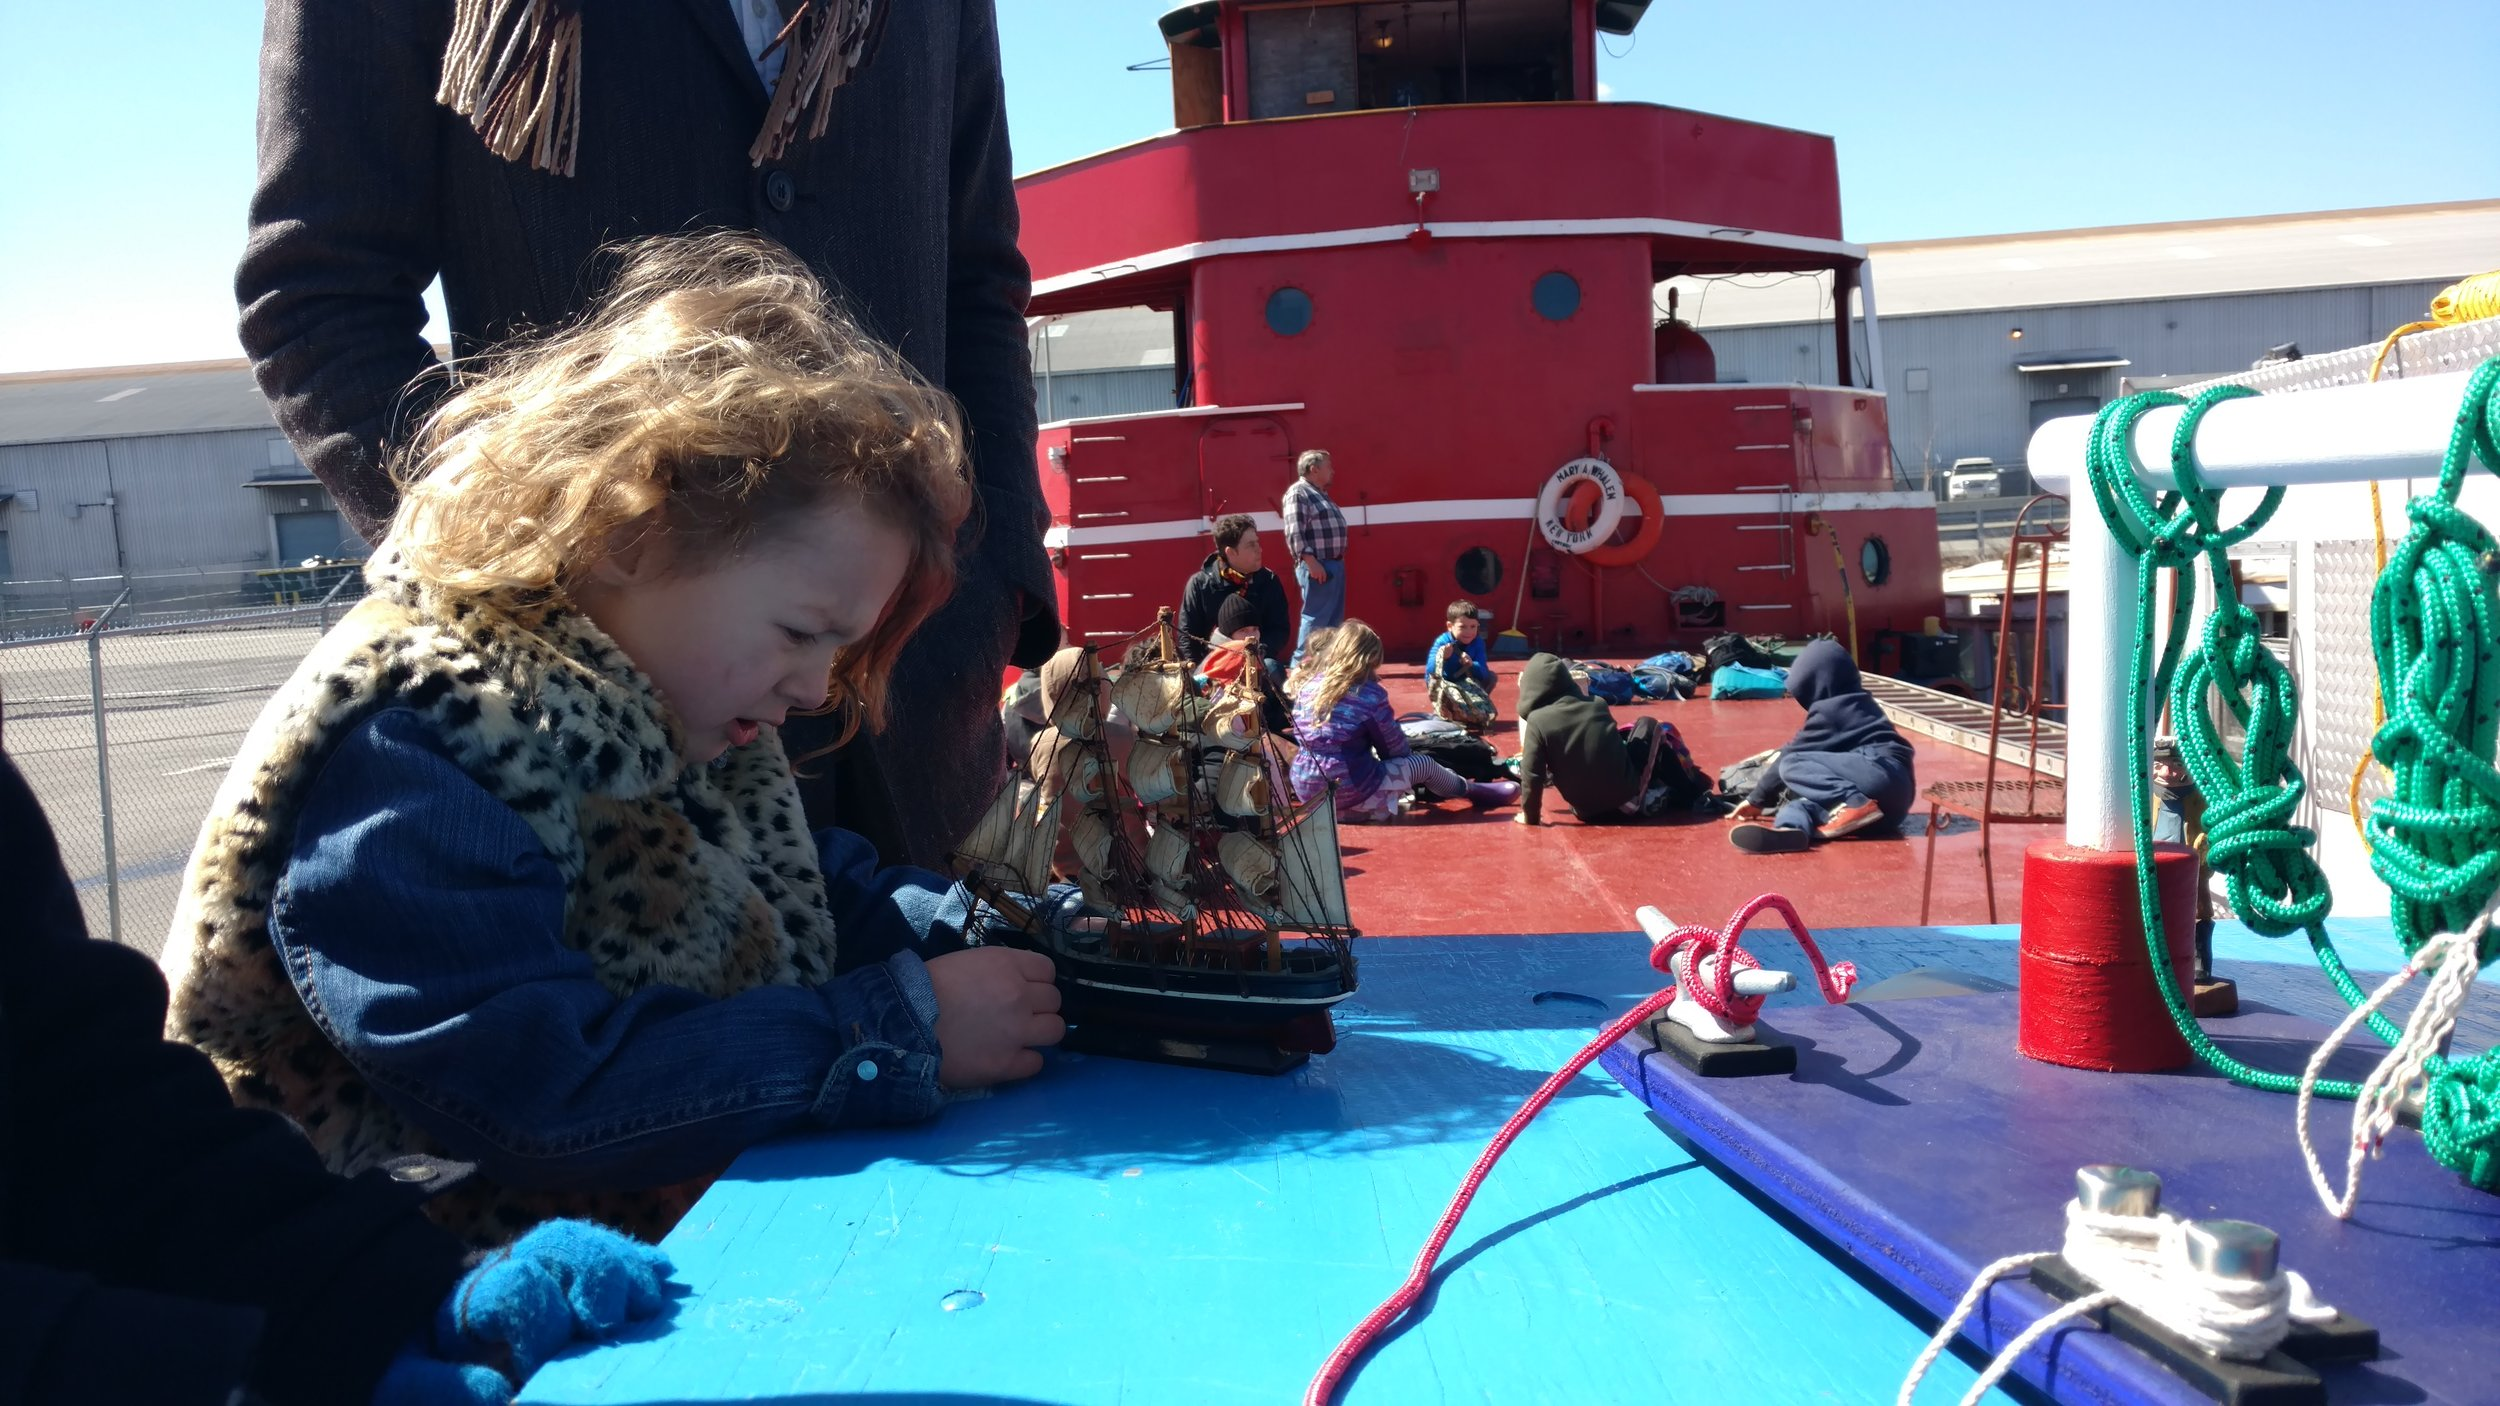 A home schooler docks her own tall ship at the knotboard!